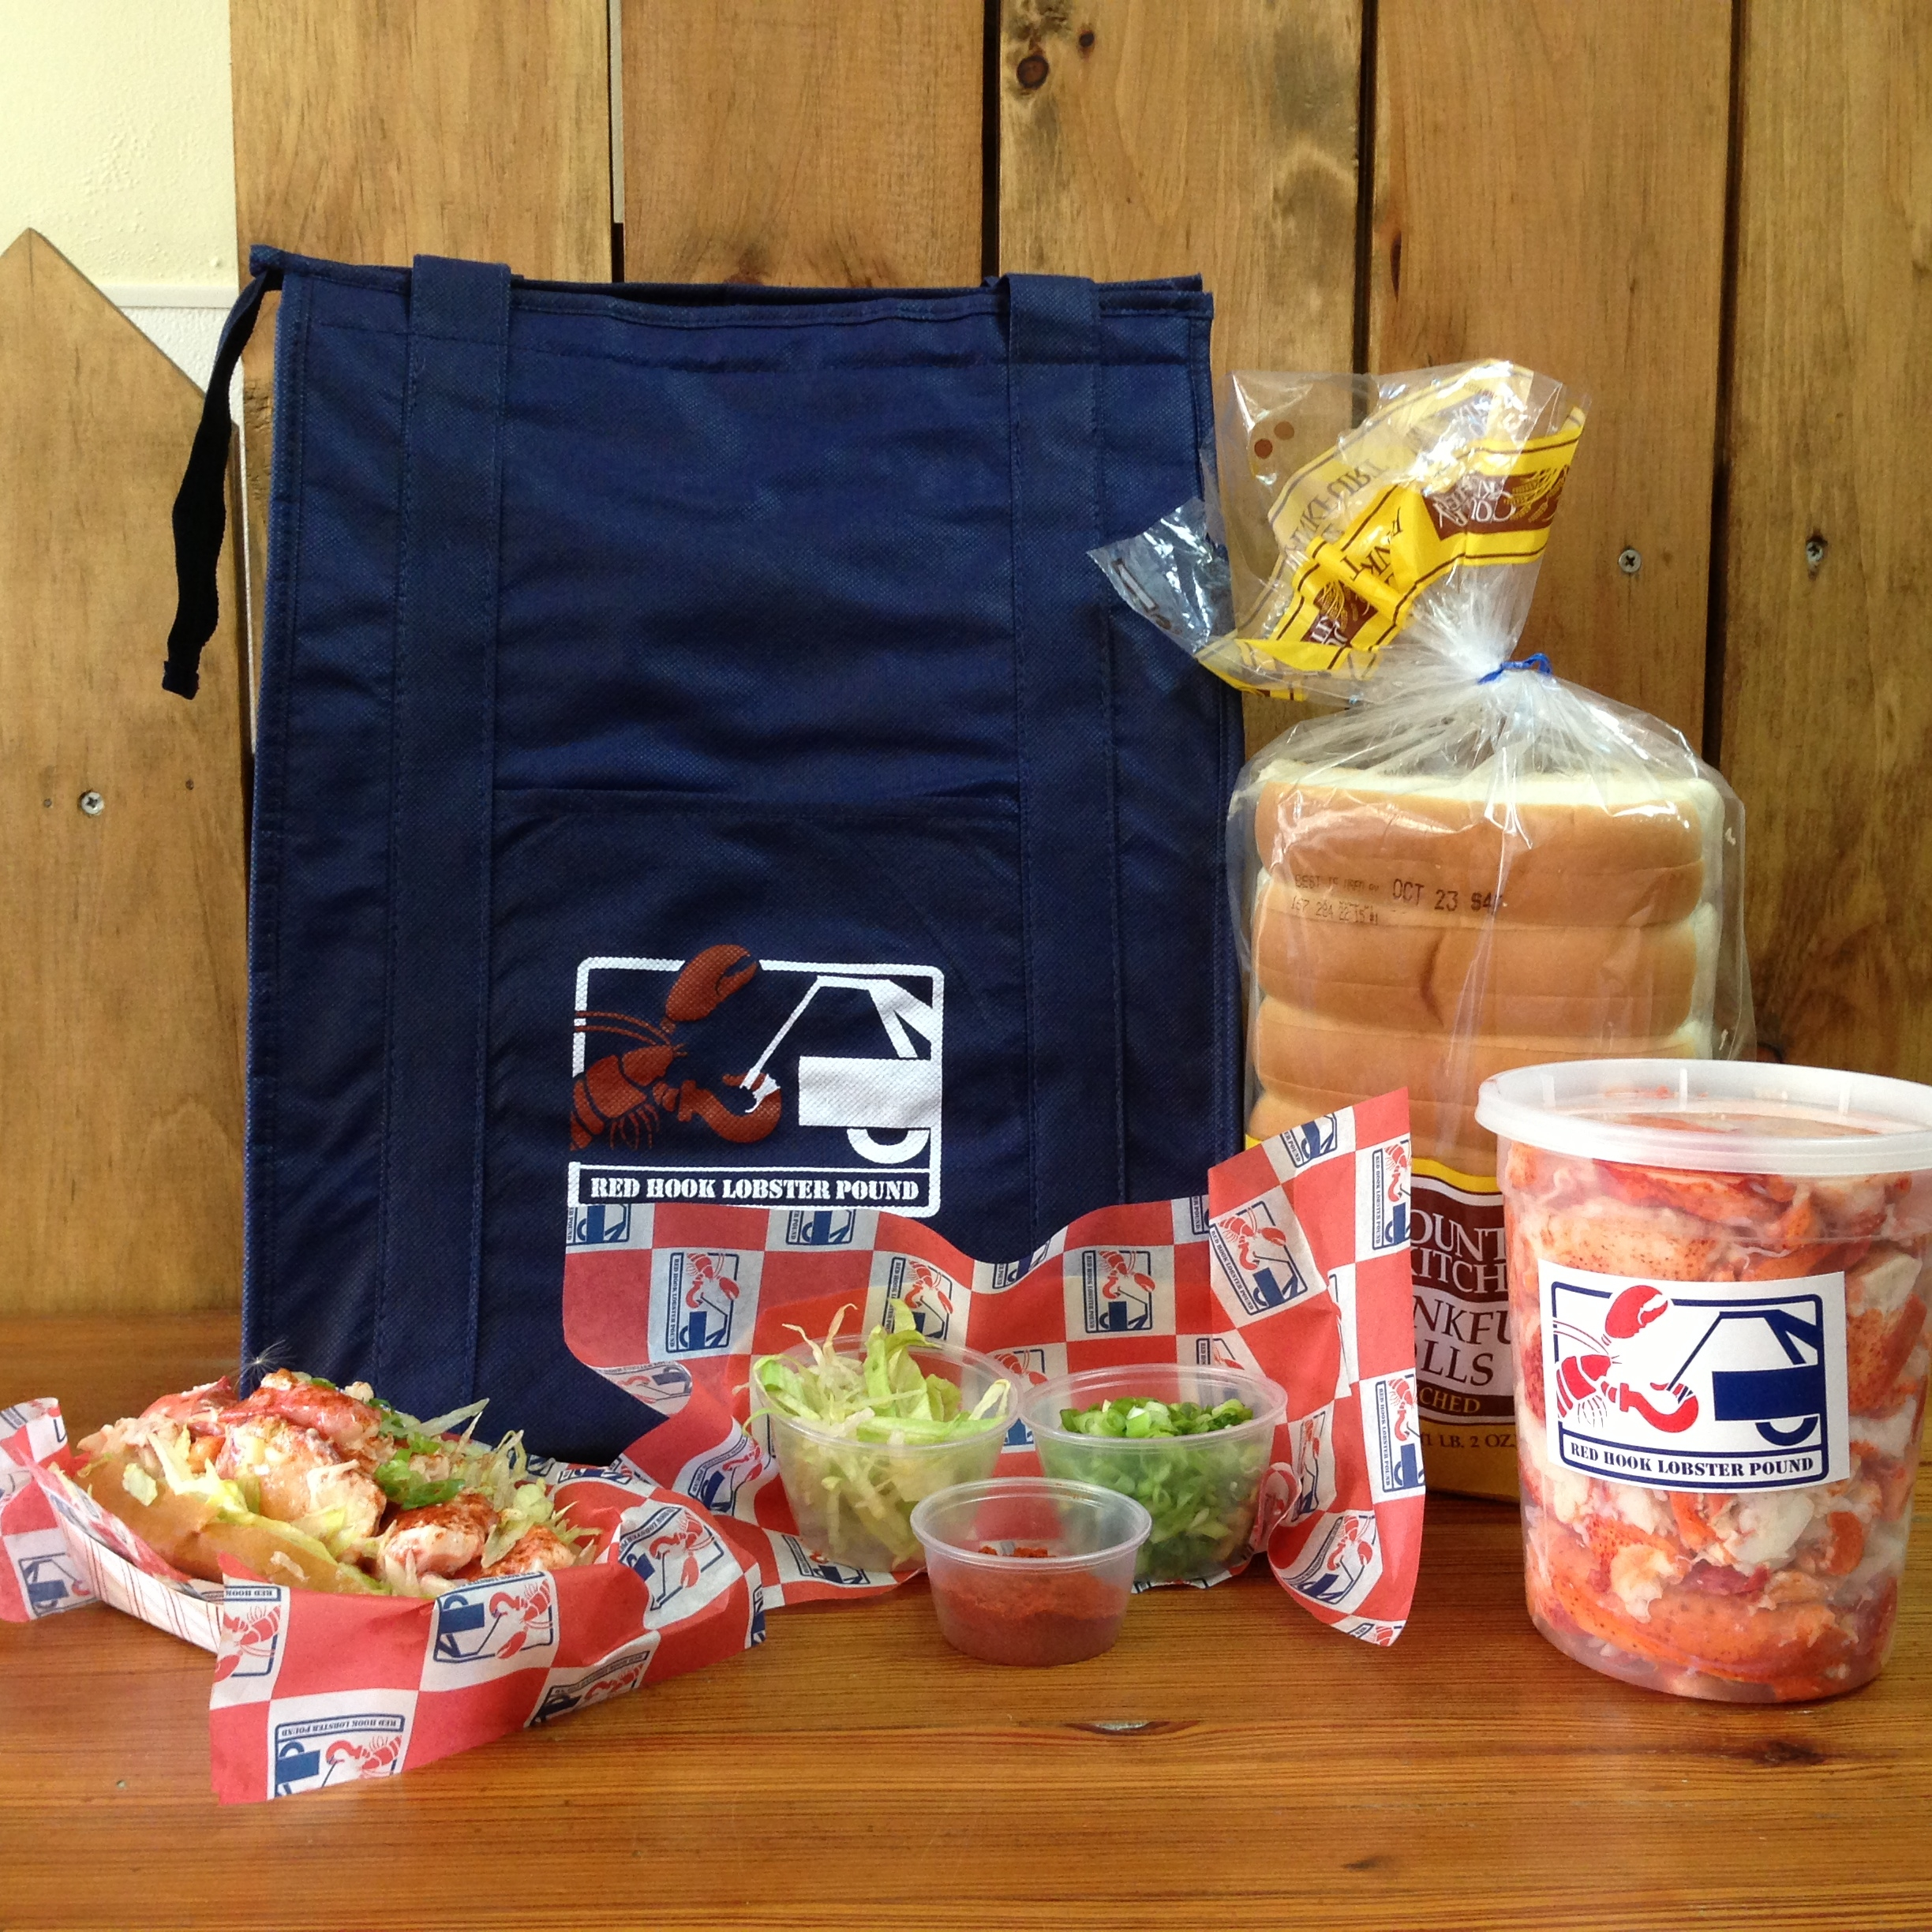 D.I.Y. LOBSTER ROLL KITS